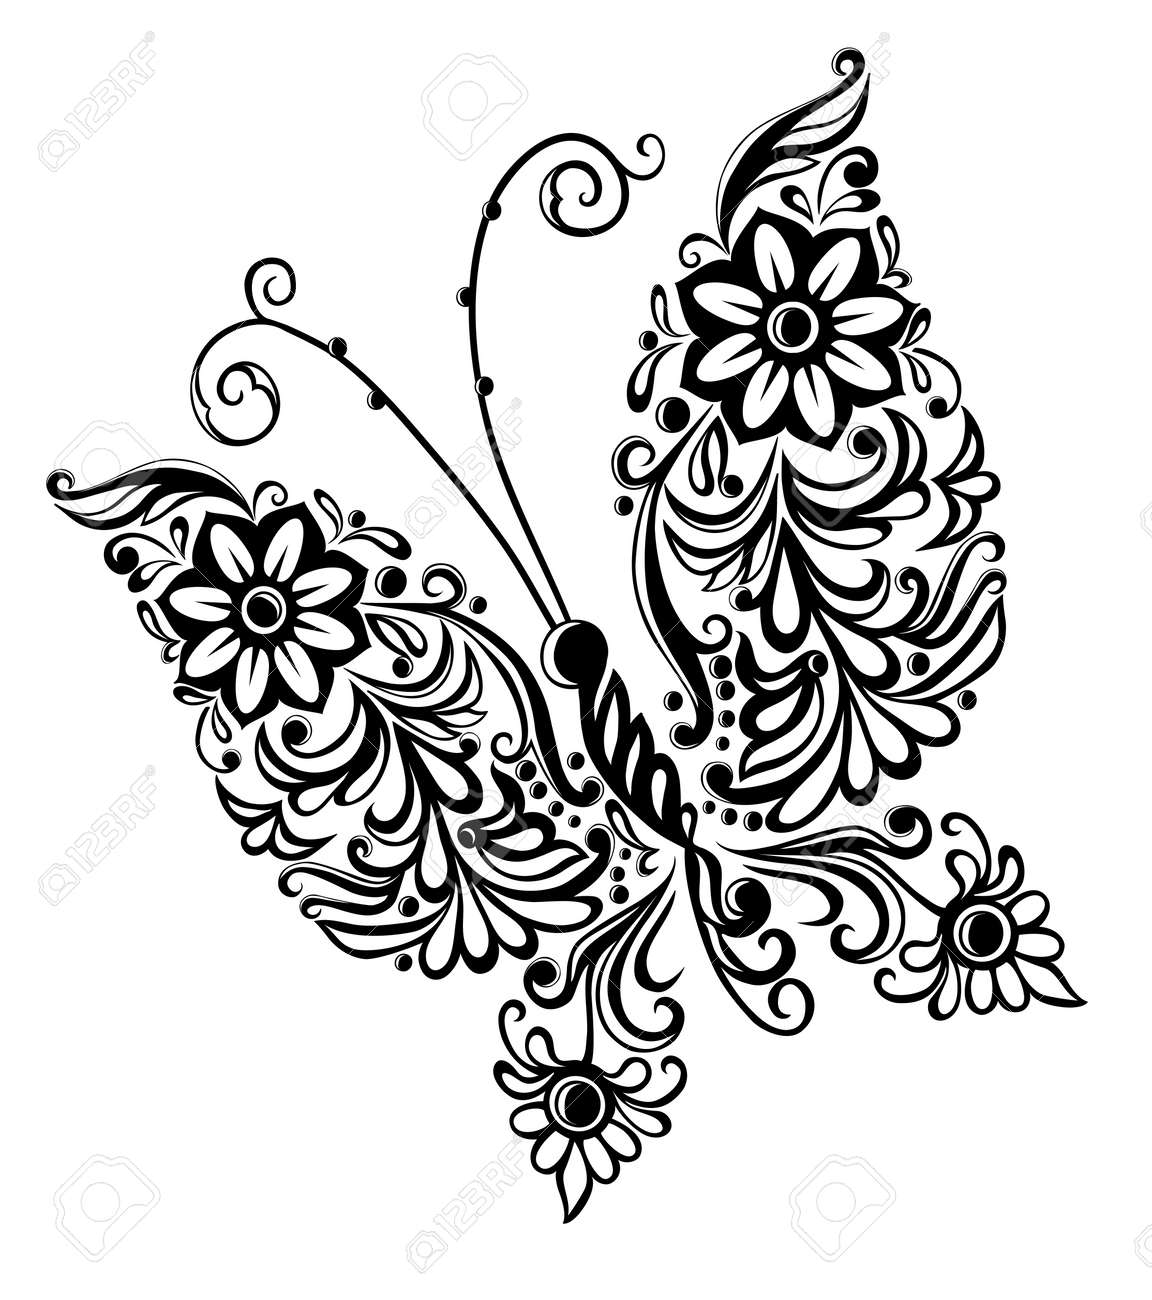 painting butterfly,swirl abstract element design - 16012758